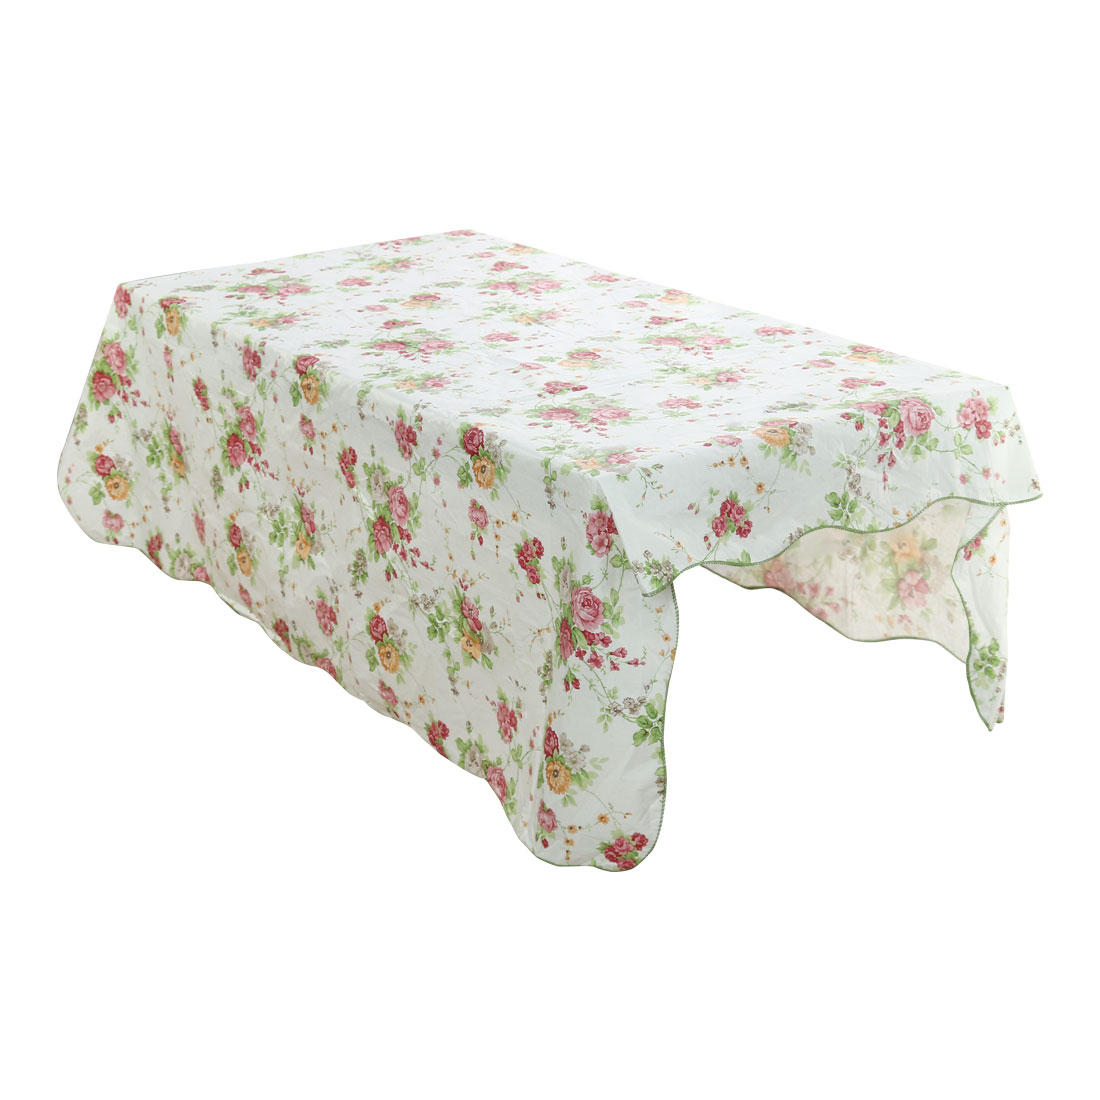 Home Picnics Rose Pattern Water Resistant Oil-proof Tablecloth Table Cloth Cover Pink 60 x 60 Inch